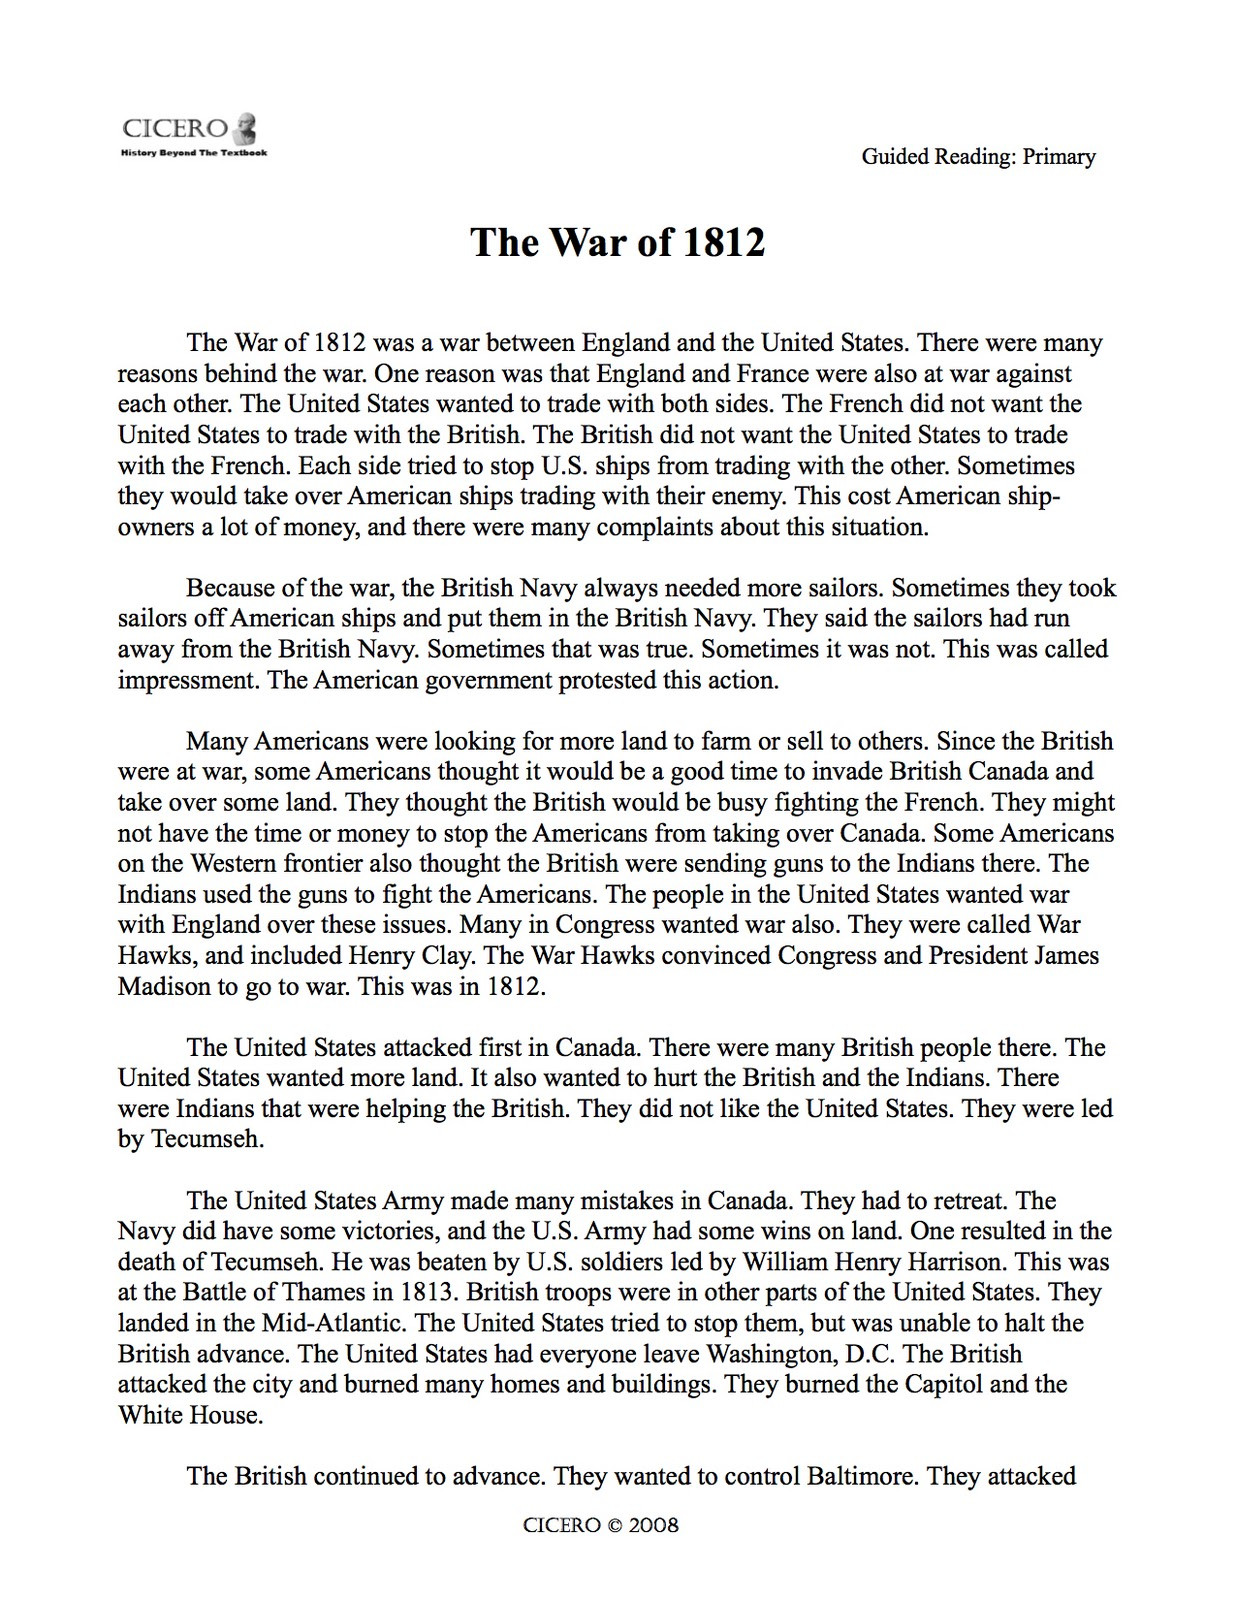 dbq 19 world war 2 the road to war essay Dbq 21 essay date:26062016, 08 free essay on dbq 21: world war ii: the road to war available totally free at m causes of world war 2 essays - cheap essay.